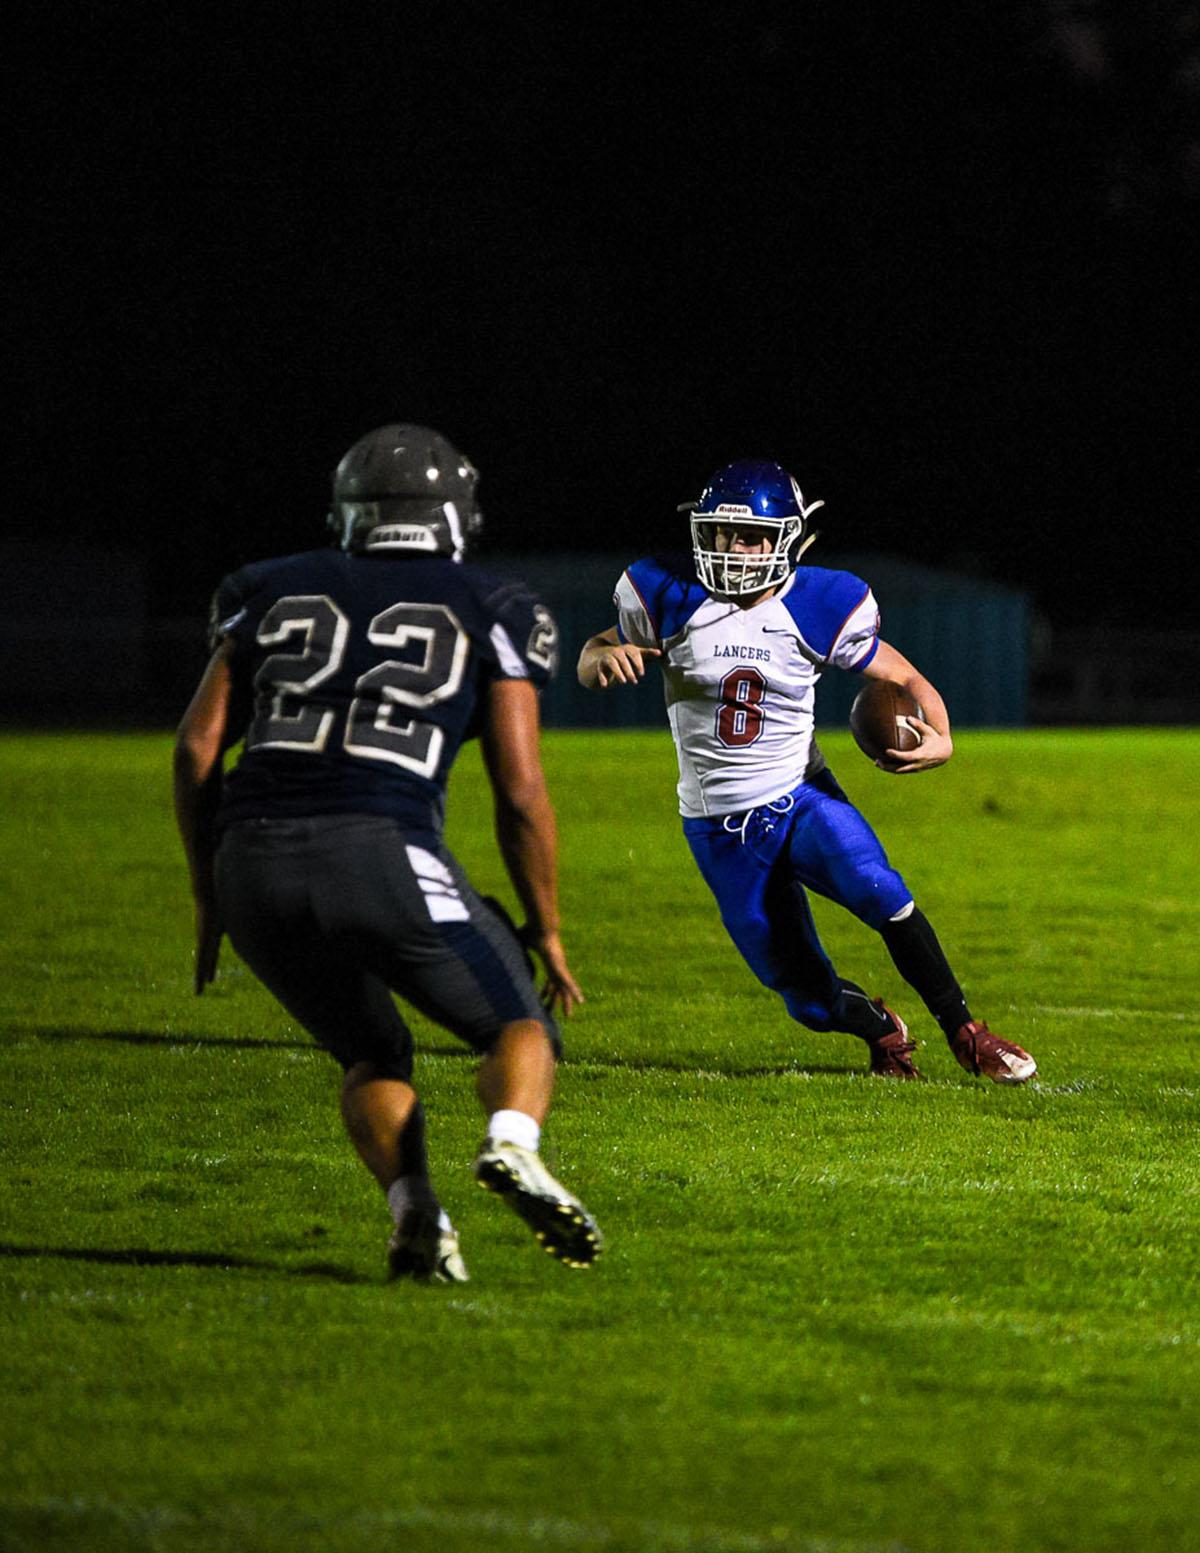 Churchill running back Dalton McDaniel (#8) rushes for a gain in the Lancer's 56-7 victory over Springfield remaining 7-0 on the season. Photo by Jeff Dean, Oregon News Lab